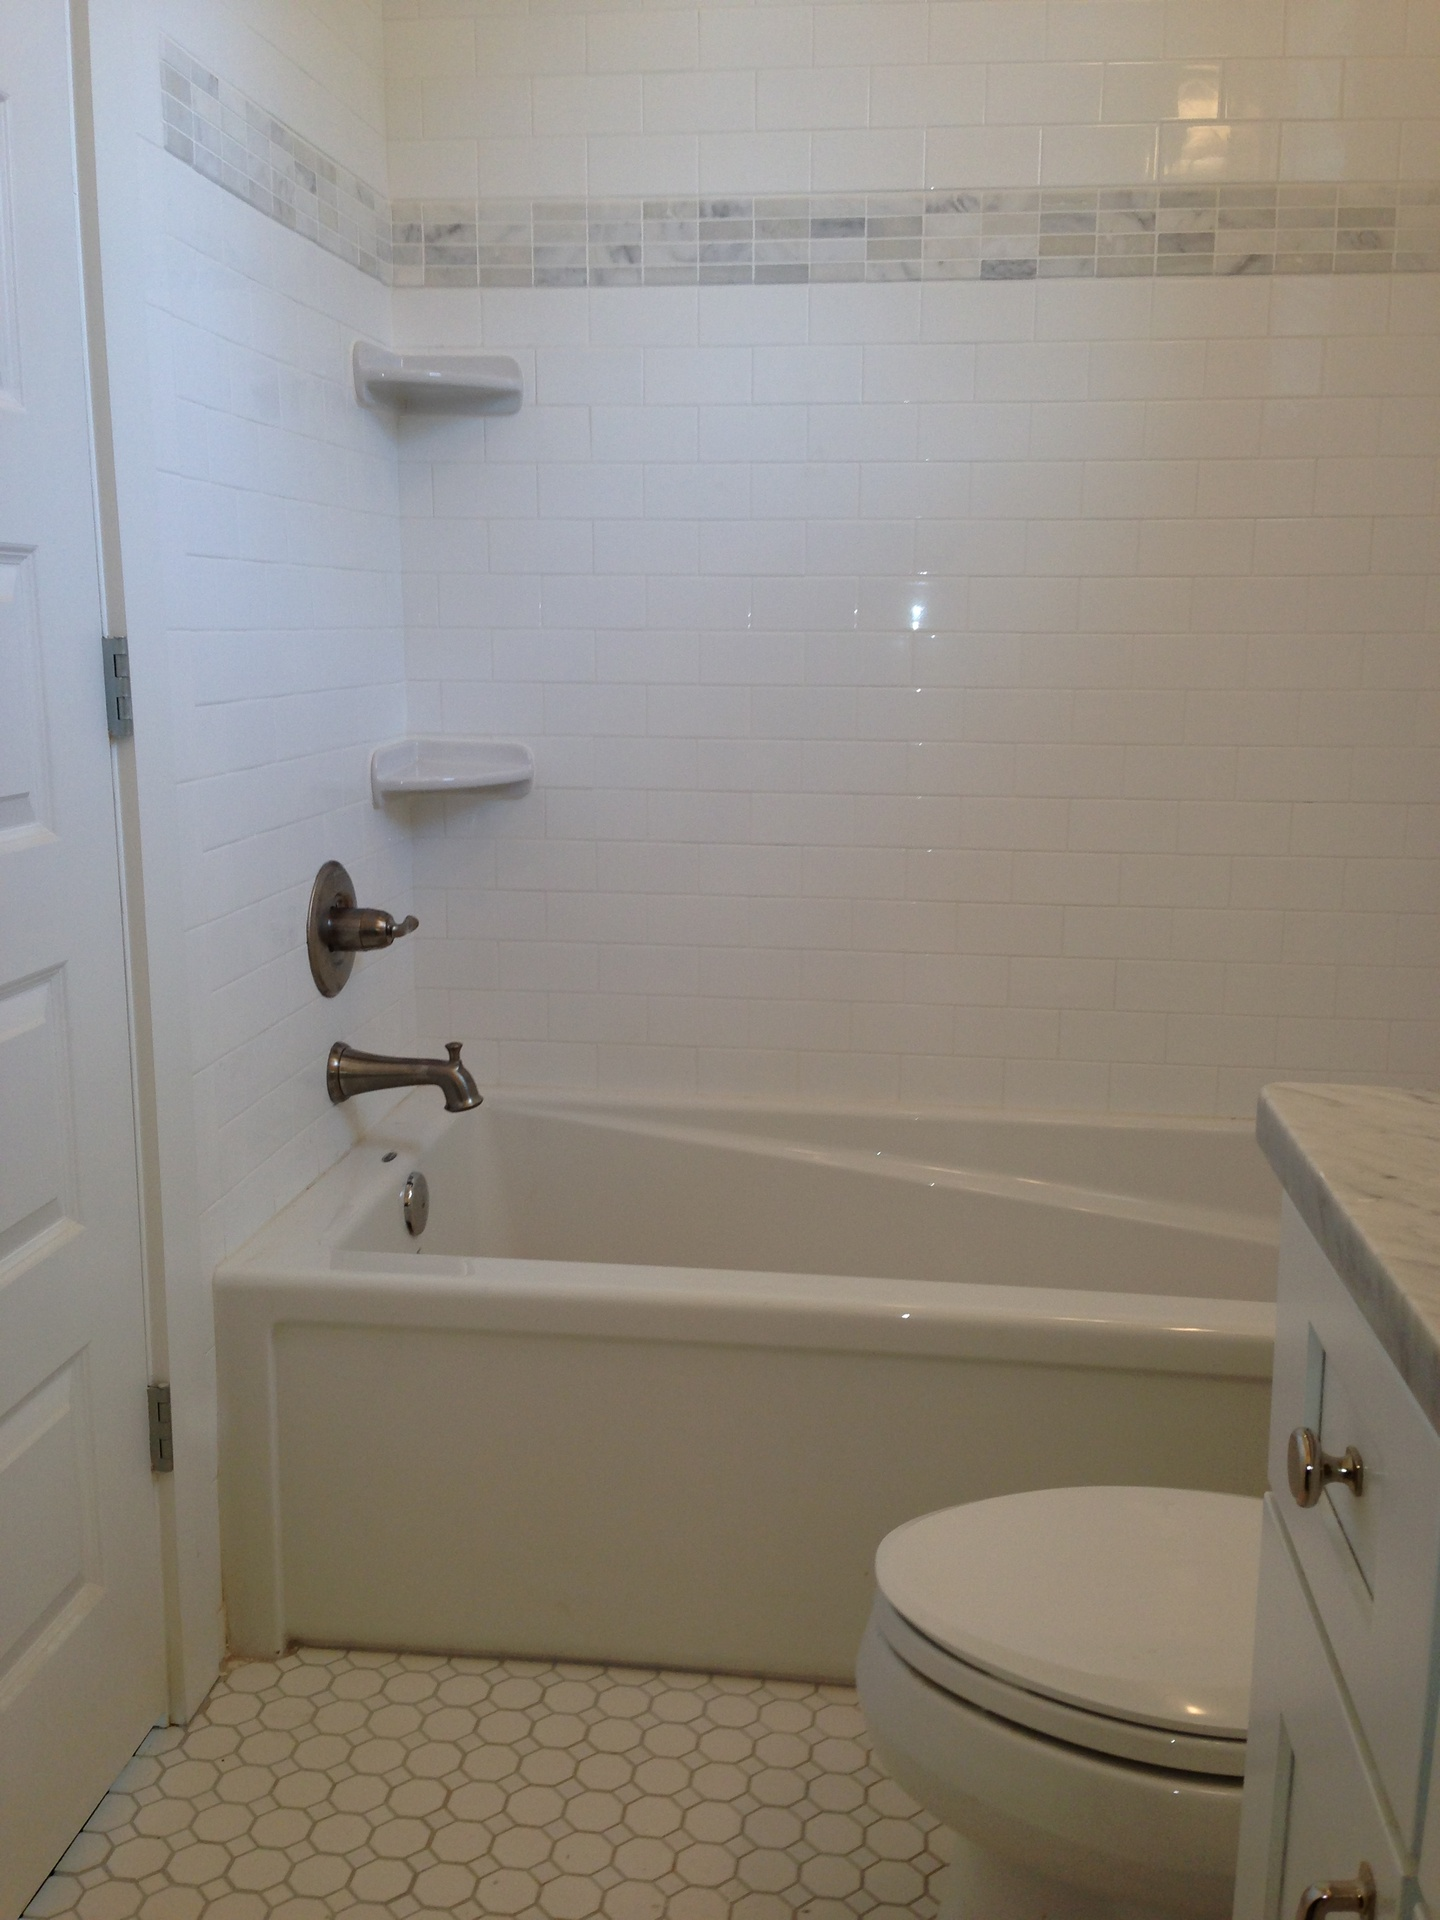 Bathroom Kitchen Remodeling Done OnTime And OnBudget Call For - Bathroom remodel panama city fl